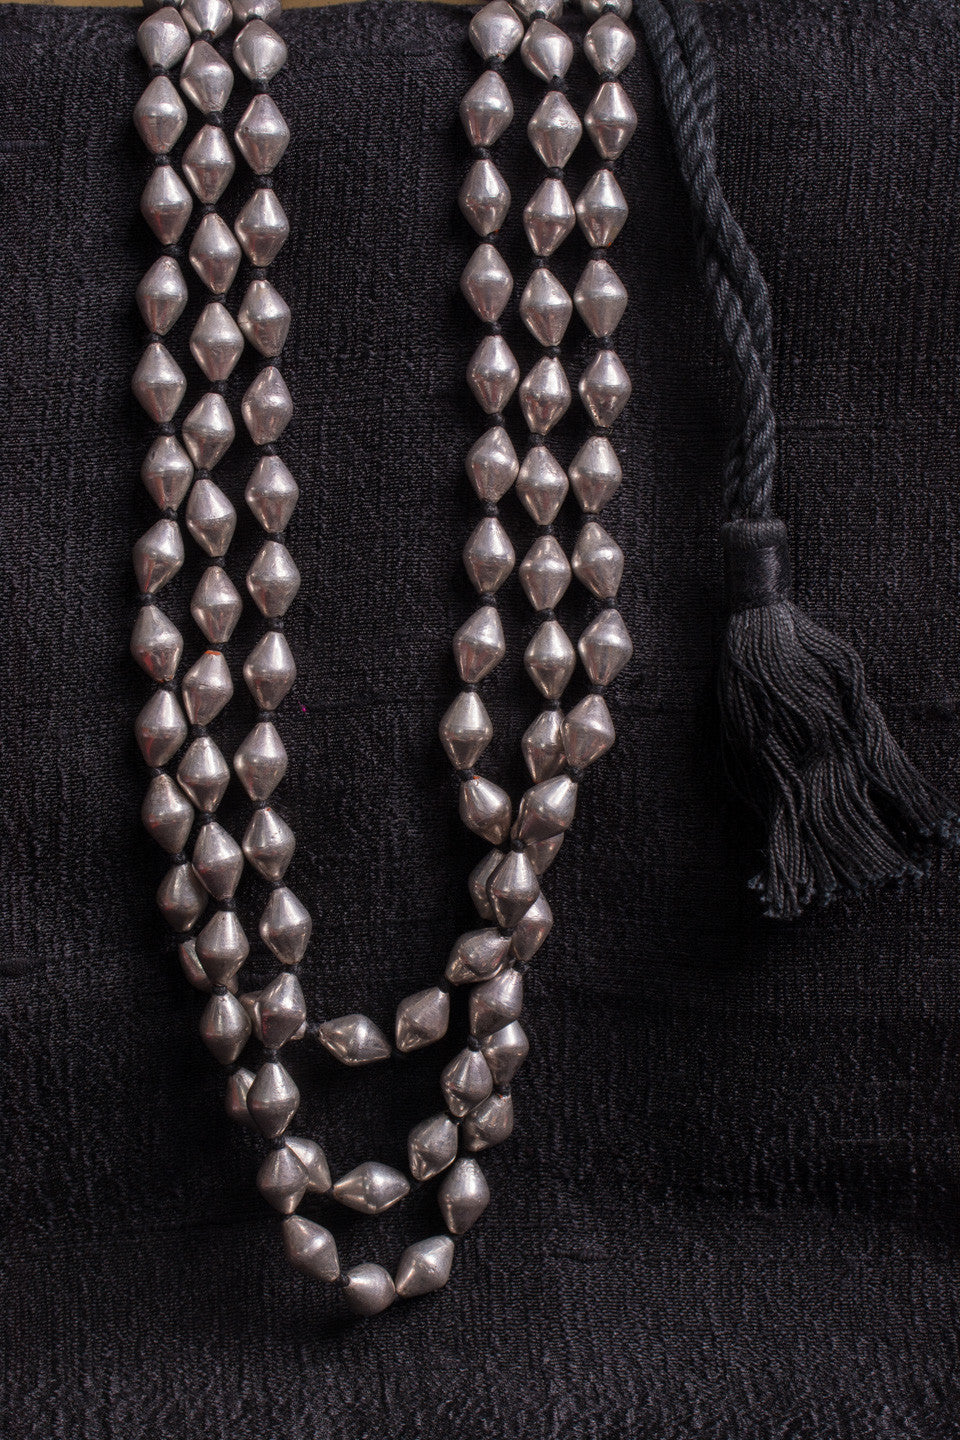 20a503-silver-amrapali-beaded-necklace